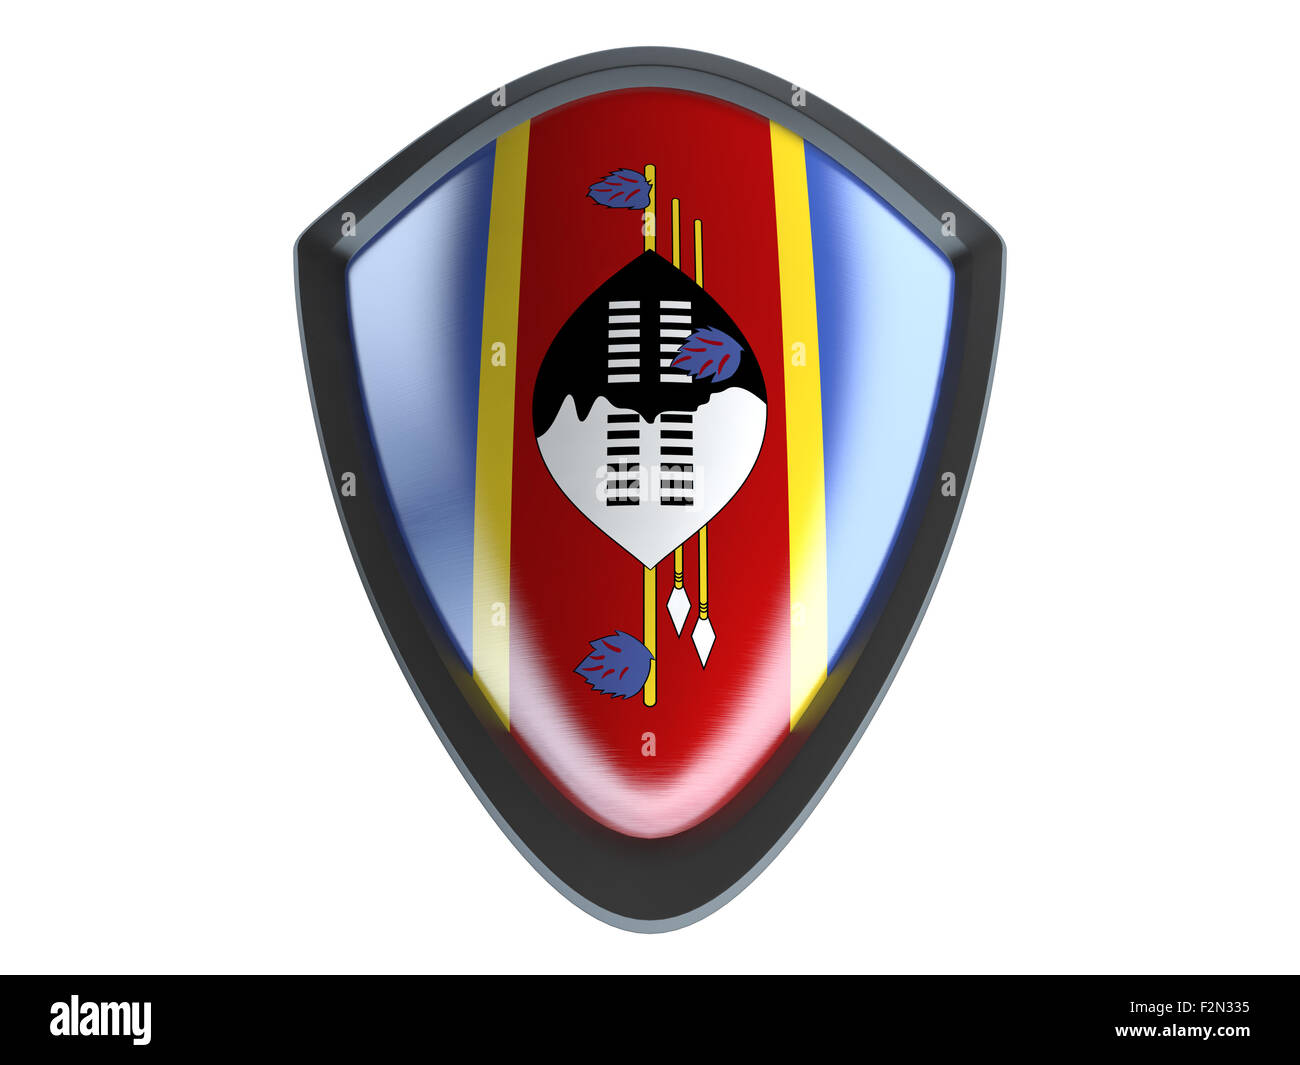 Swaziland flag on metal shield isolate on white background. Stock Photo